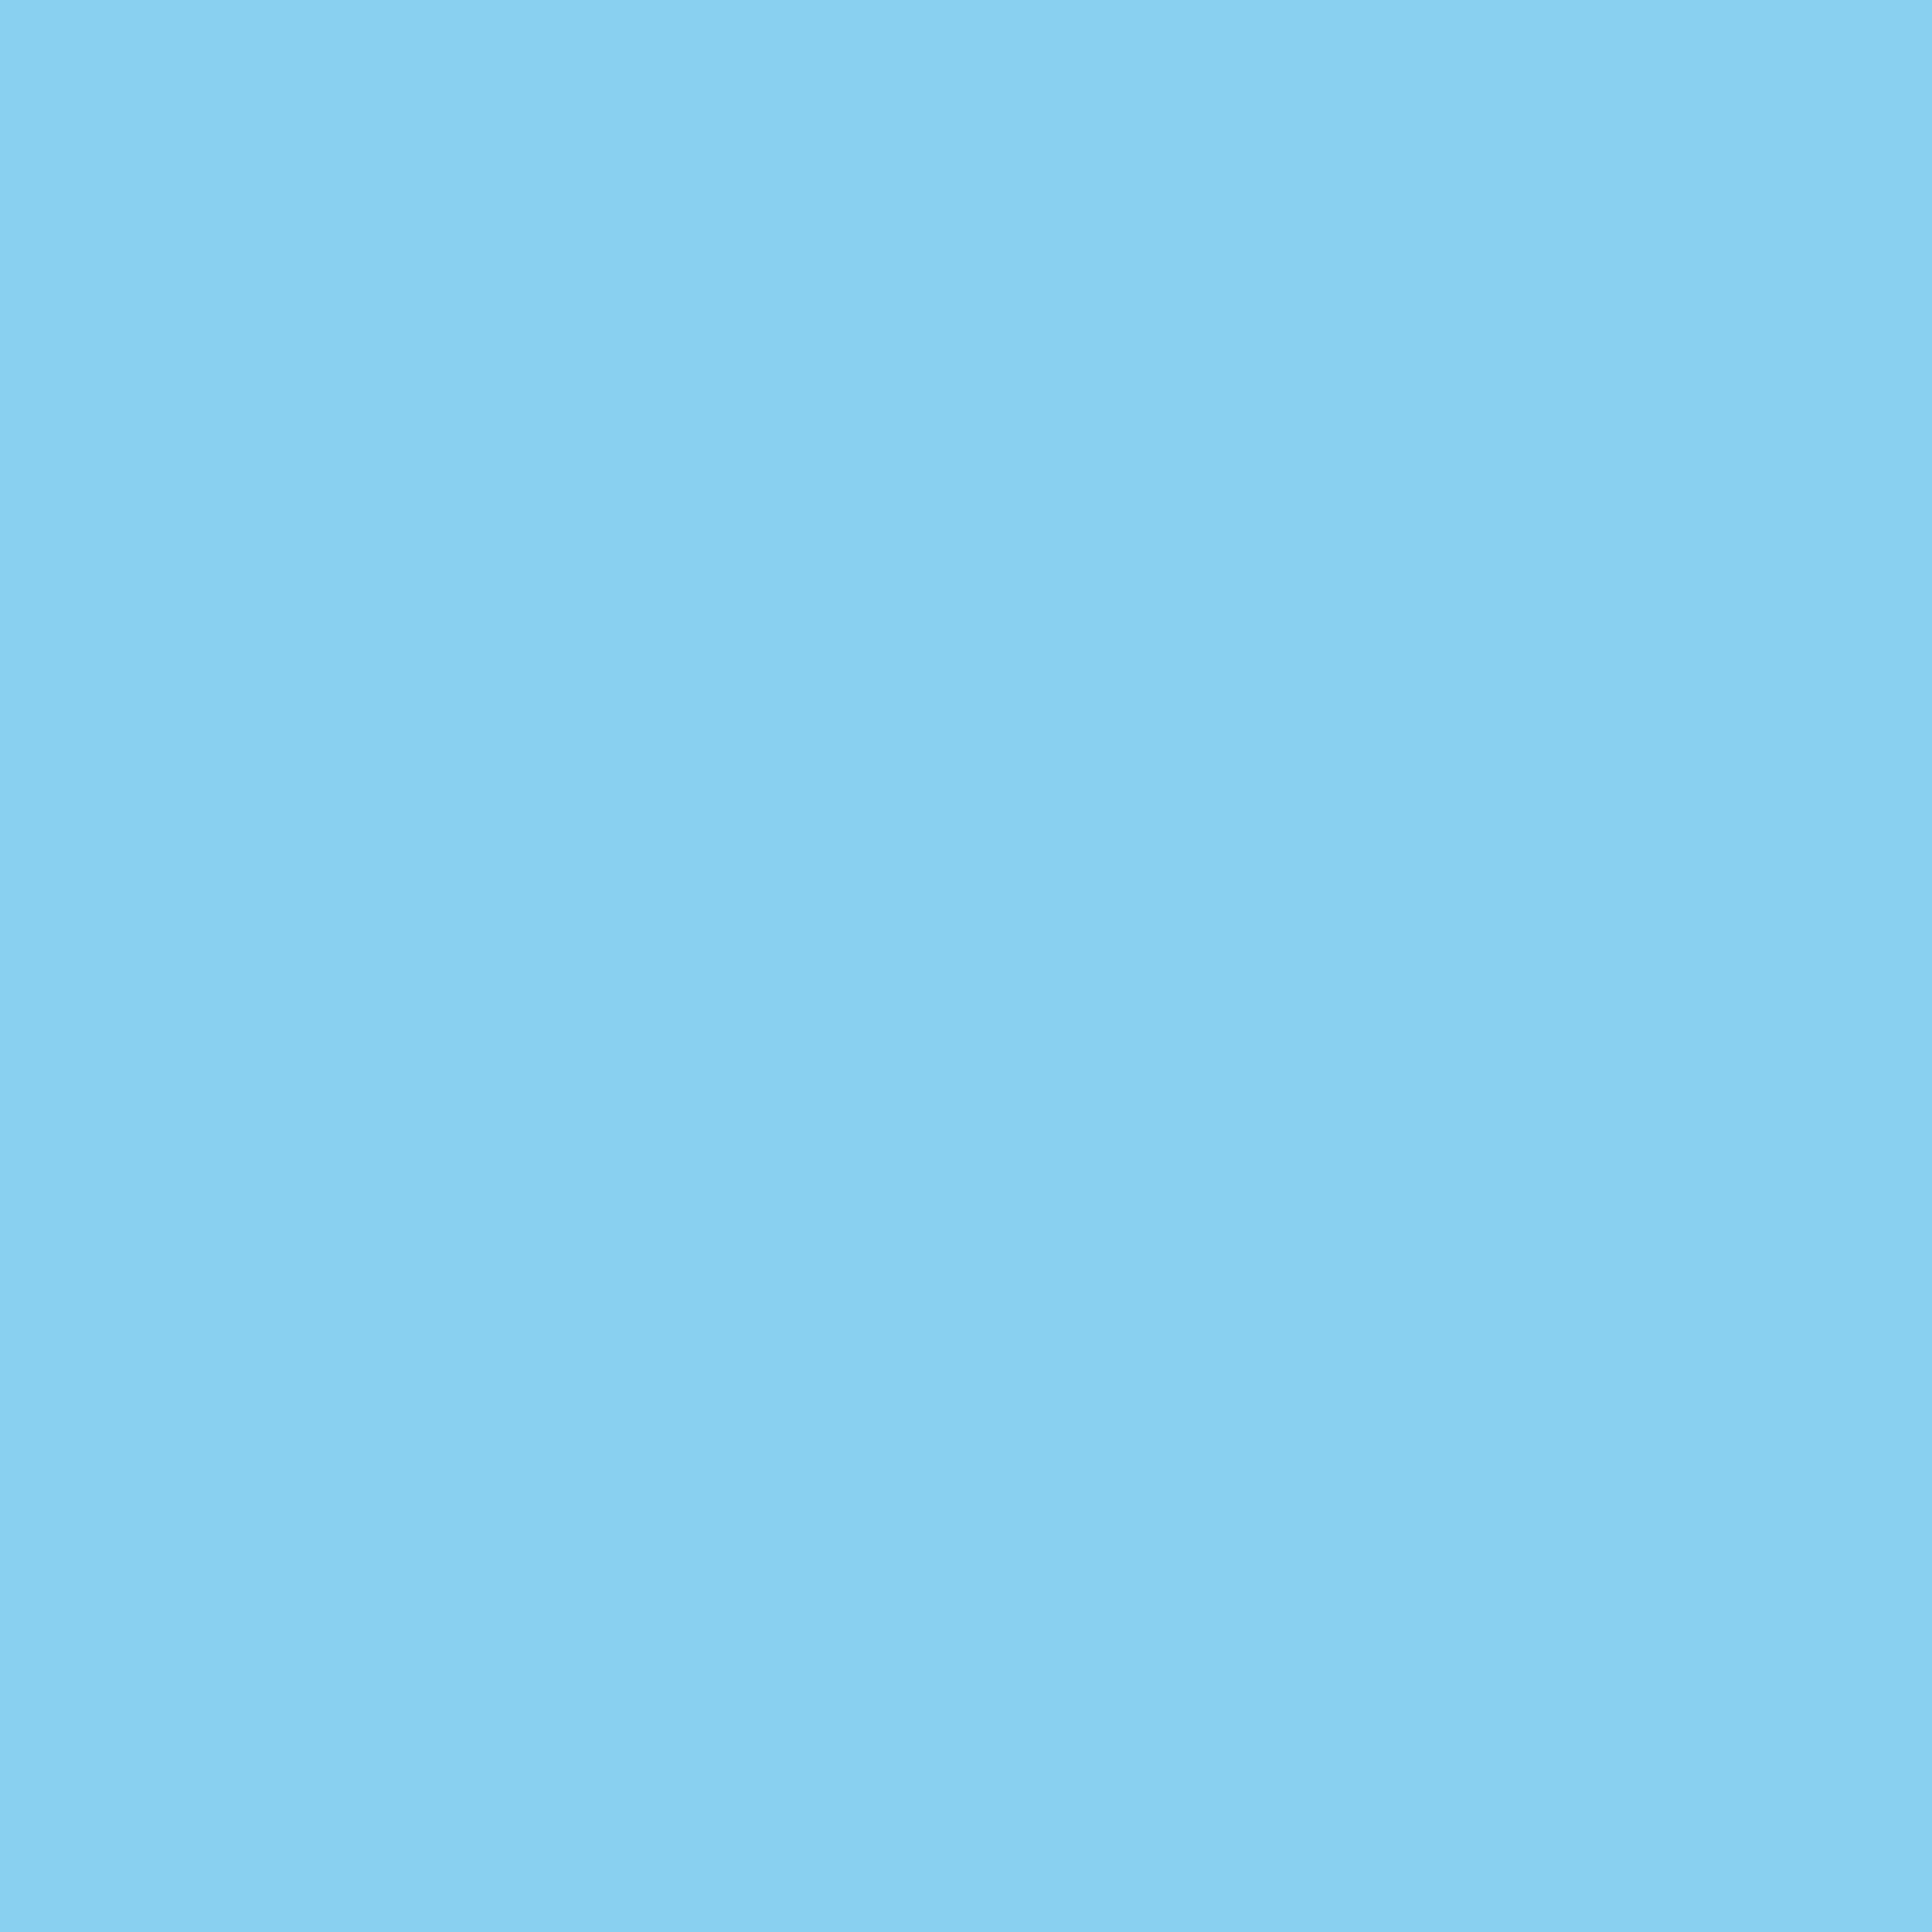 3600x3600 Baby Blue Solid Color Background